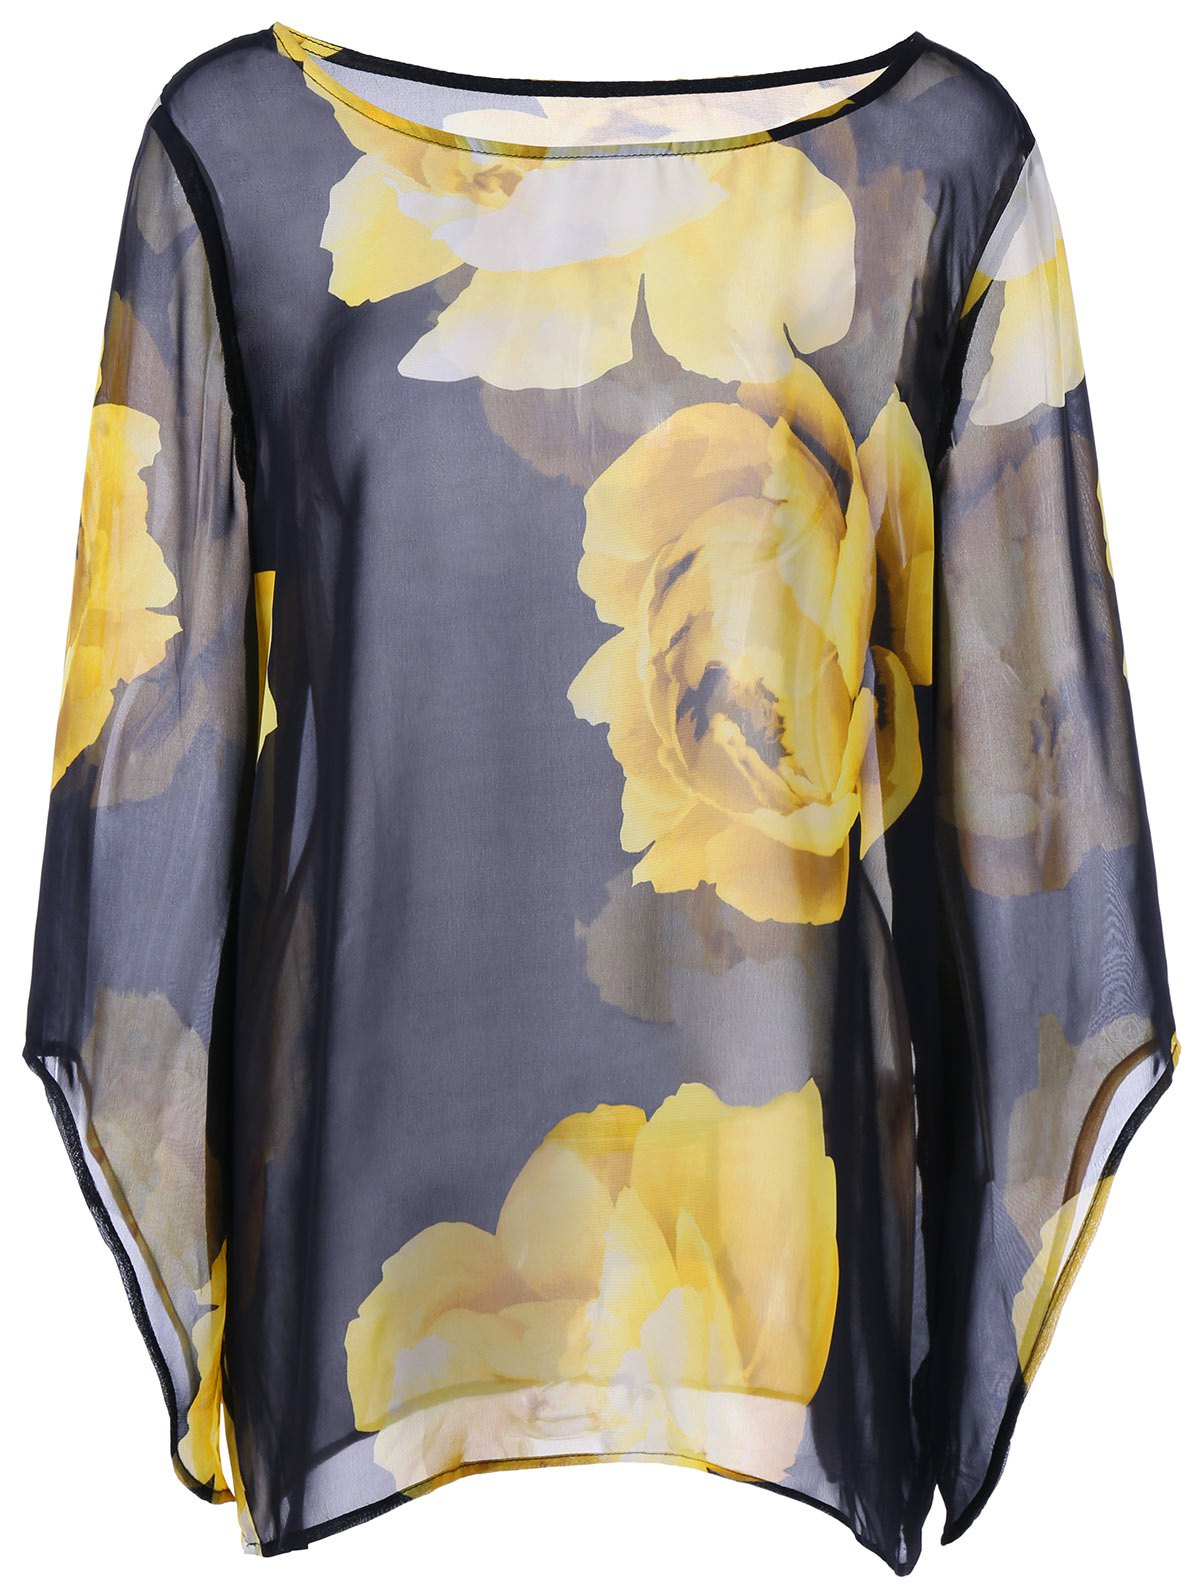 Floral Sheer Batwing Plus Size TopWOMEN<br><br>Size: 4XL; Color: COLORMIX; Material: Polyester; Shirt Length: Regular; Sleeve Length: Three Quarter; Collar: Round Neck; Style: Fashion; Season: Summer; Sleeve Type: Batwing Sleeve; Pattern Type: Floral; Weight: 0.1600kg; Package Contents: 1 x Top;